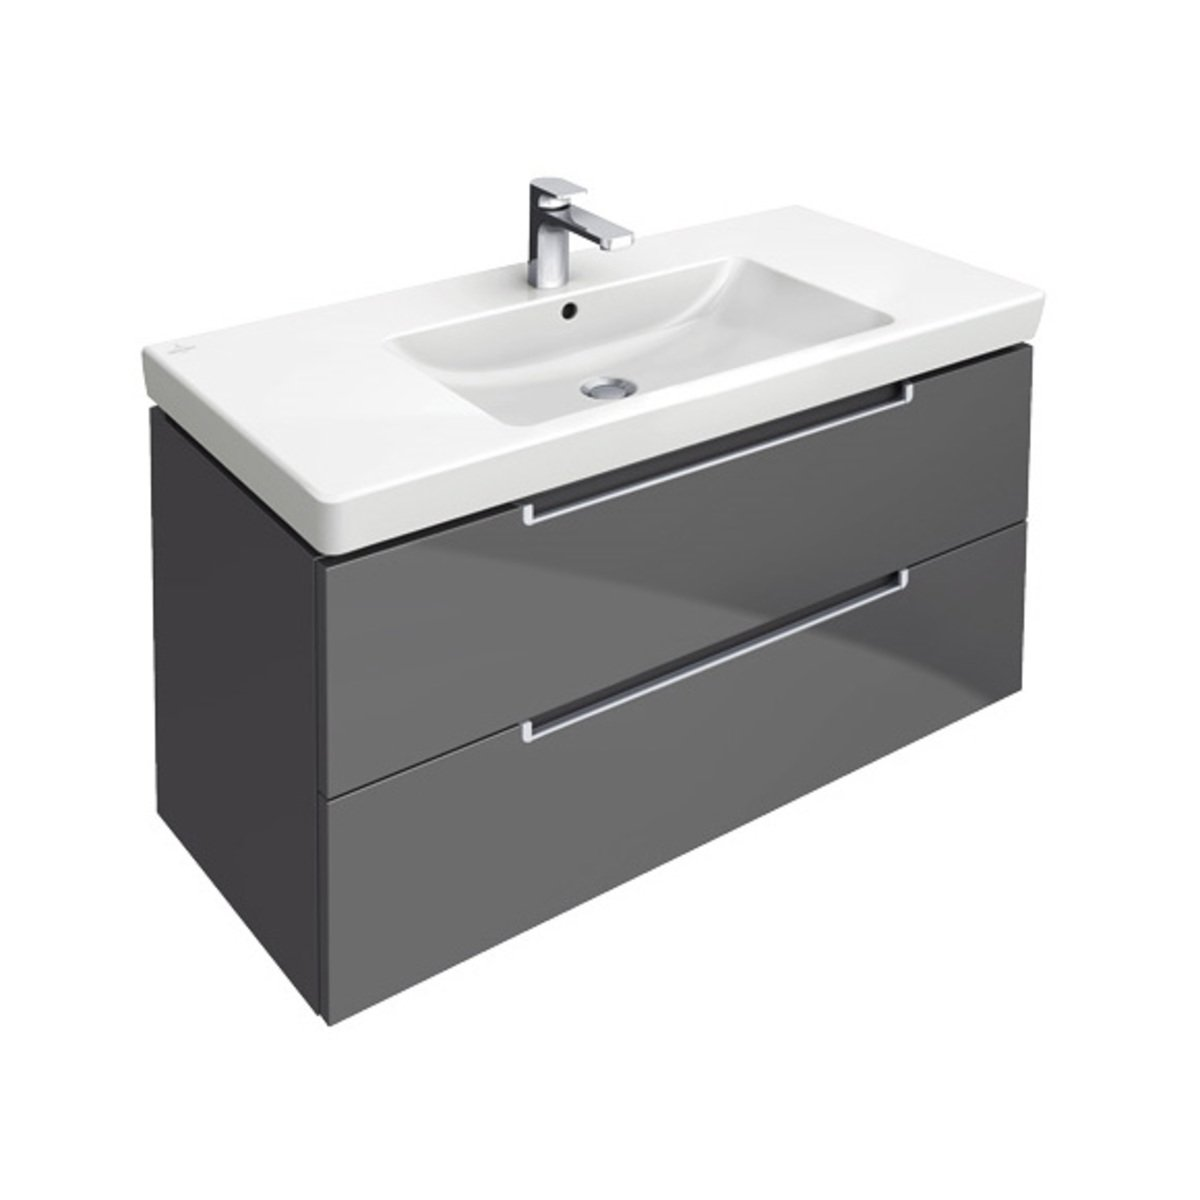 Villeroy boch subway 2 0 meuble sous lavabo 98 7x44 for Meubles 2 0